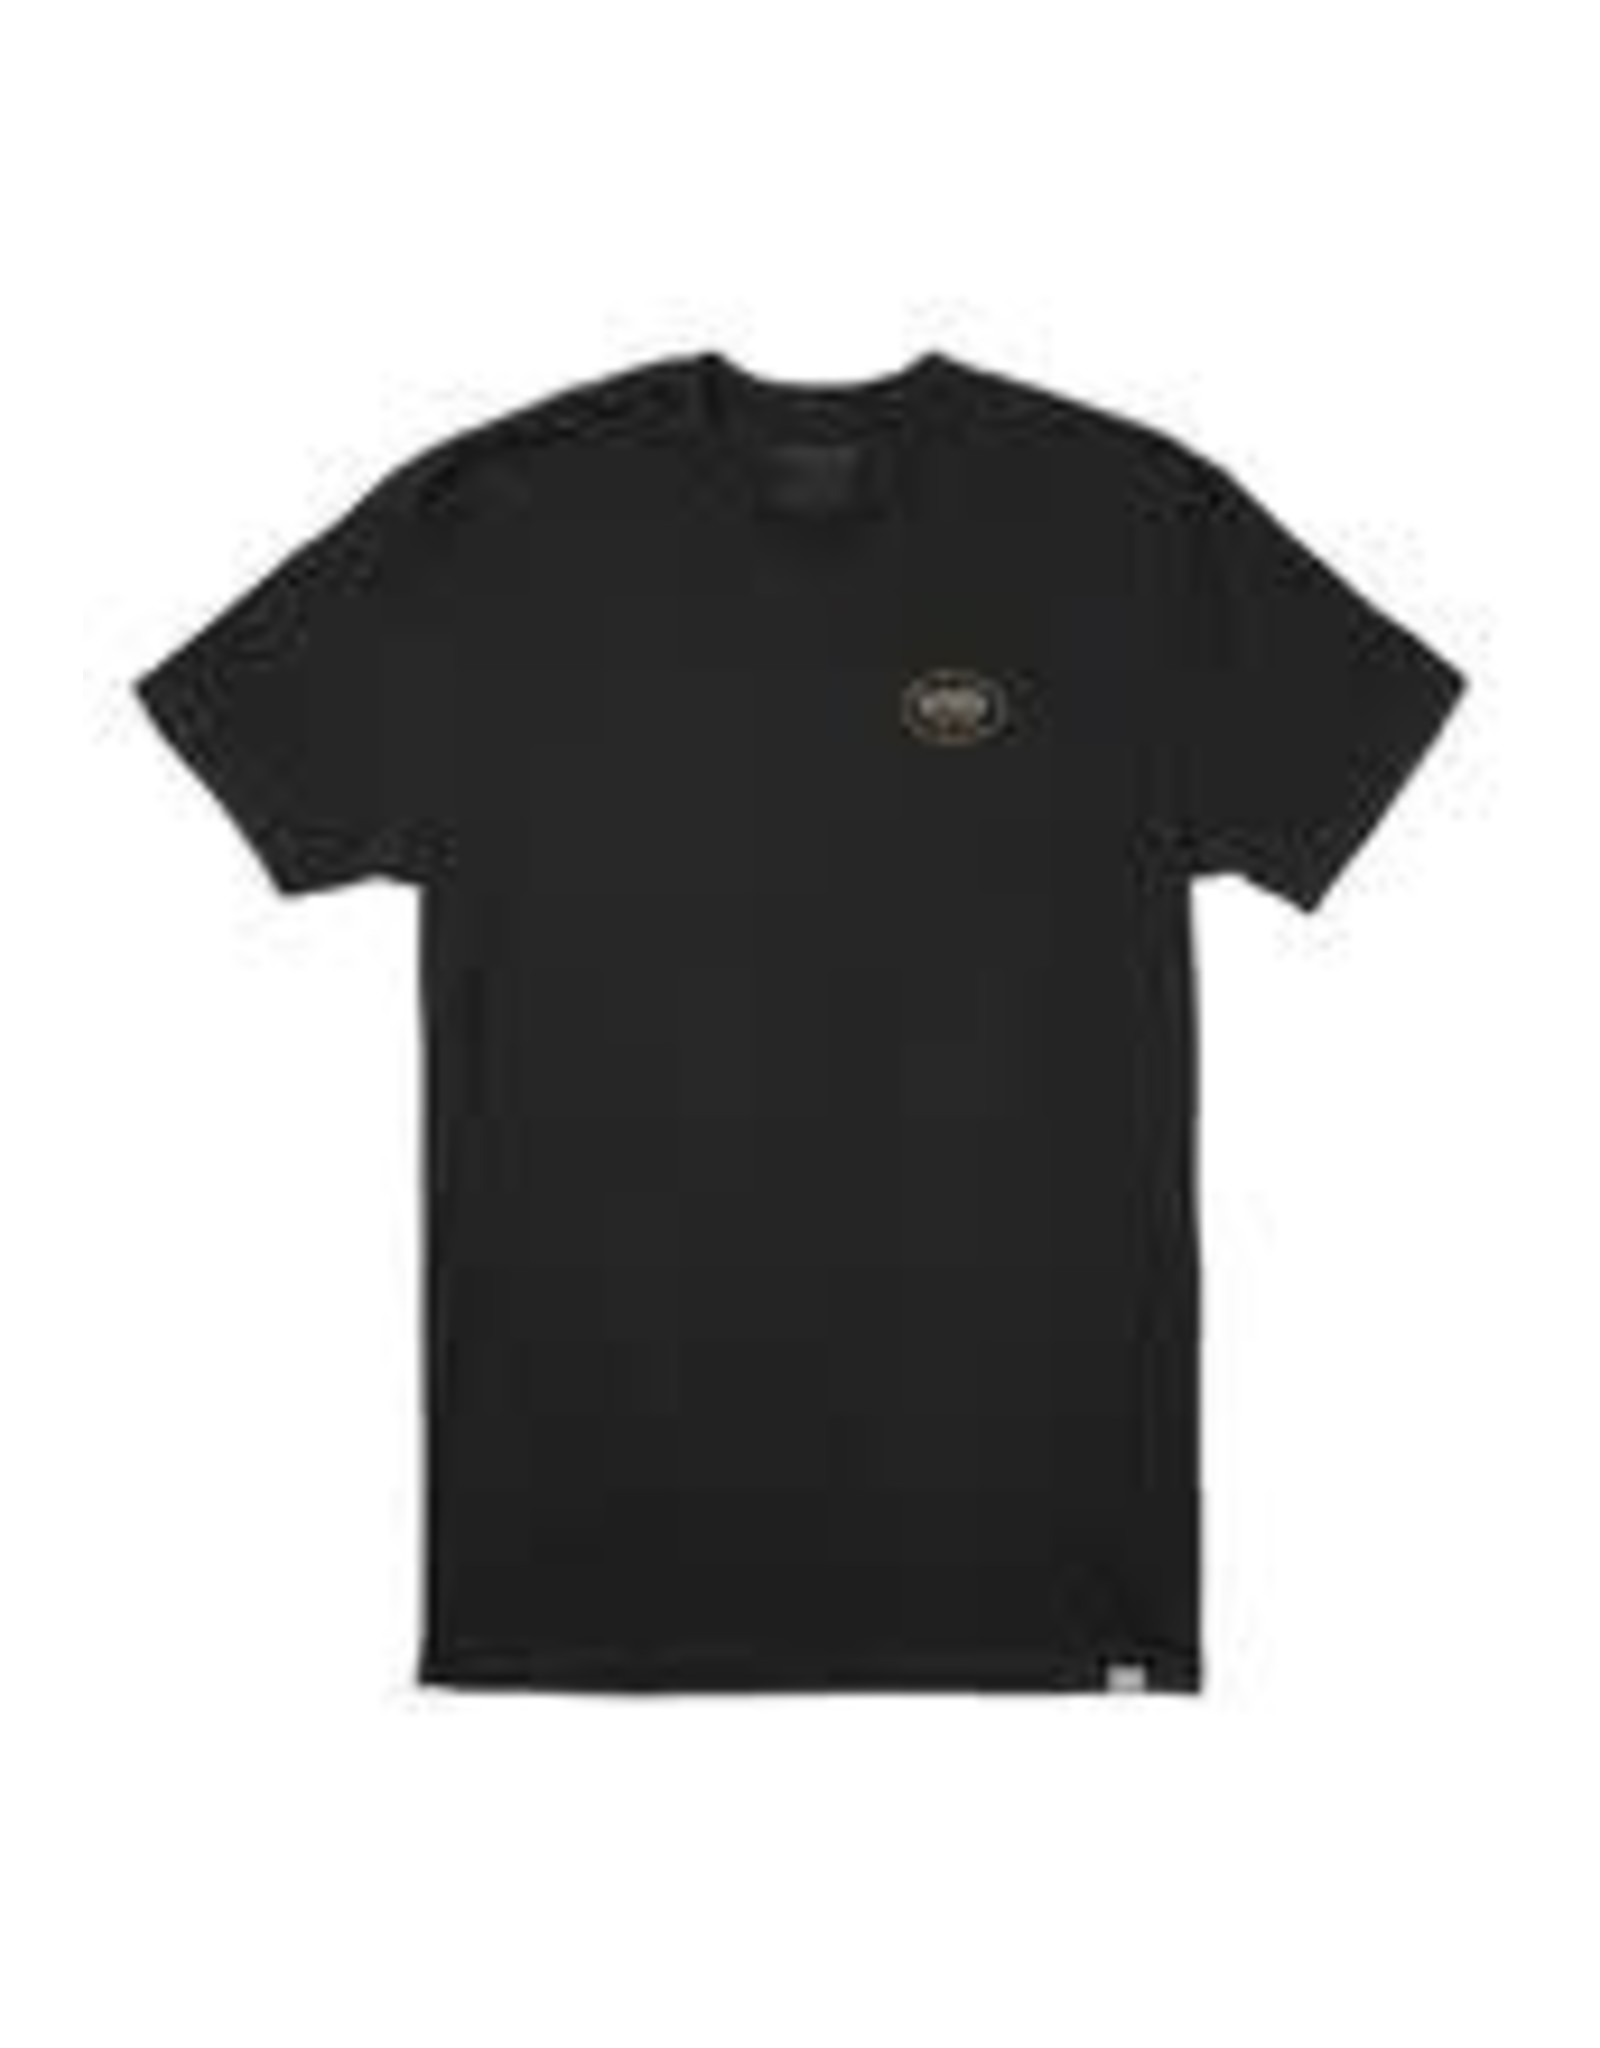 nixon Nixon - T-shirt homme traction black